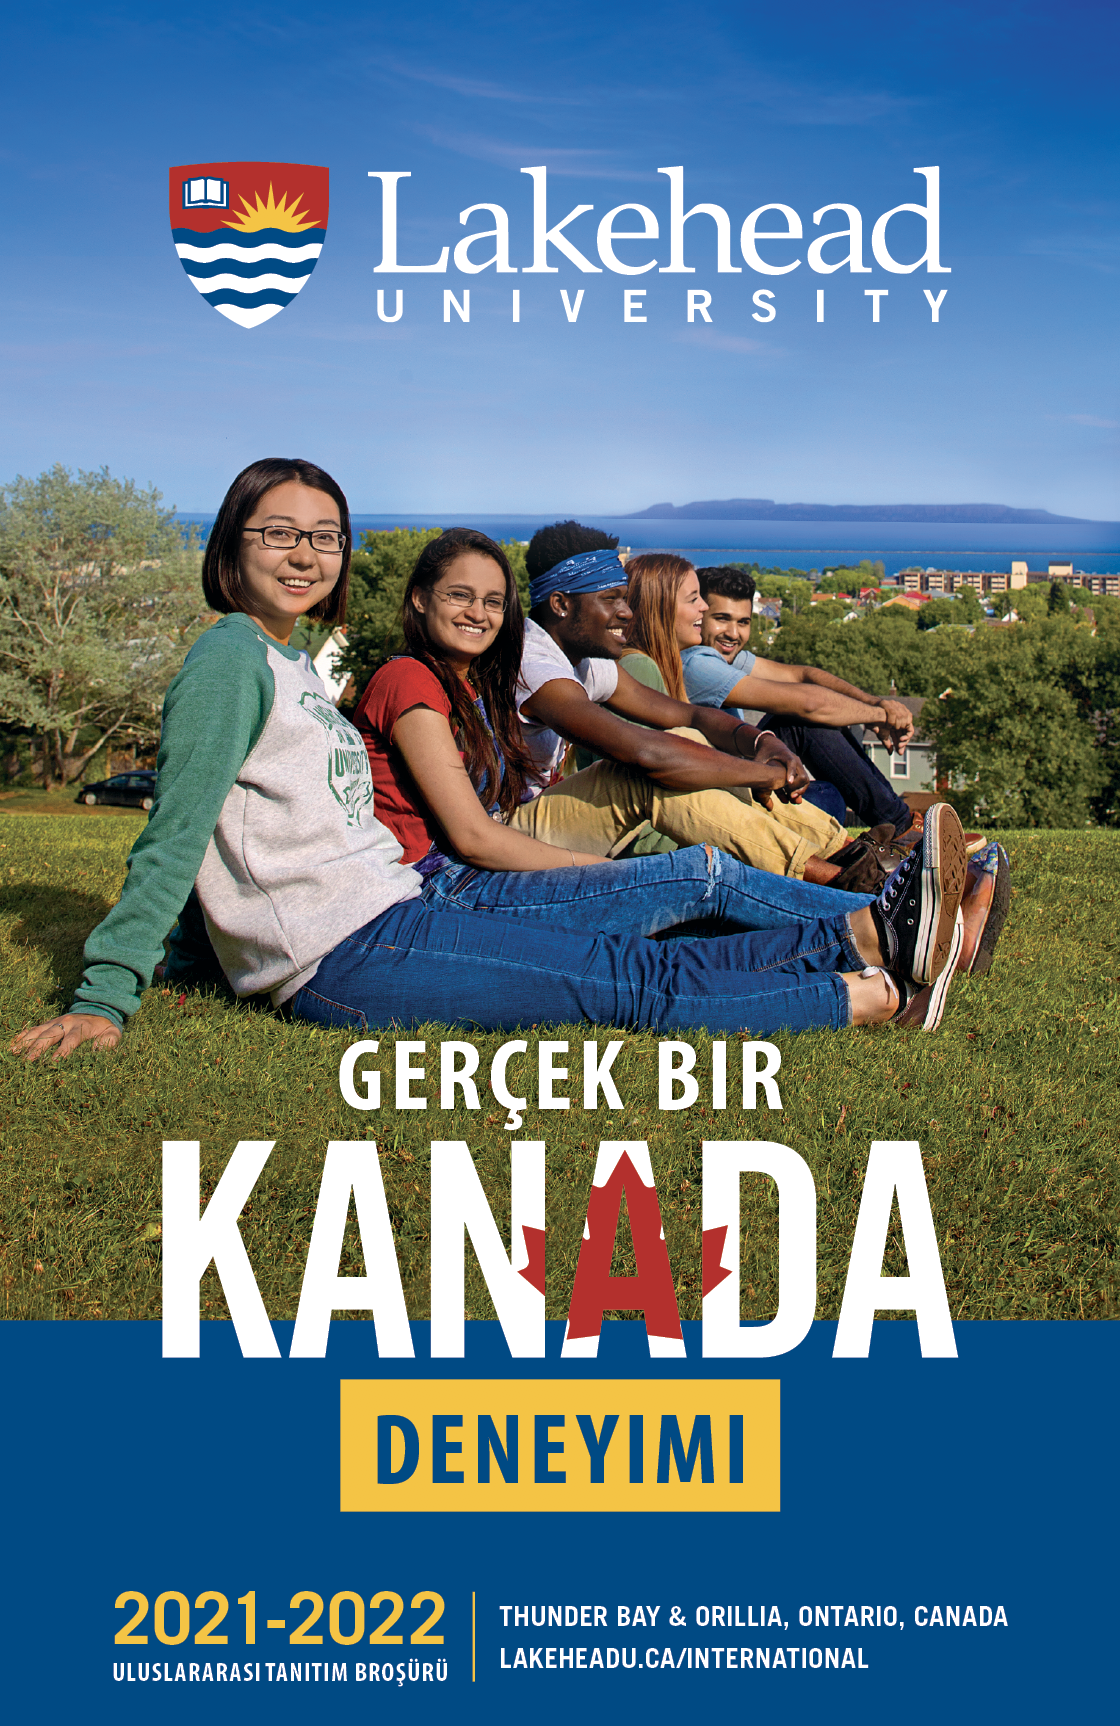 The cover of the 2021 Lakehead International Brochure in Turkish.